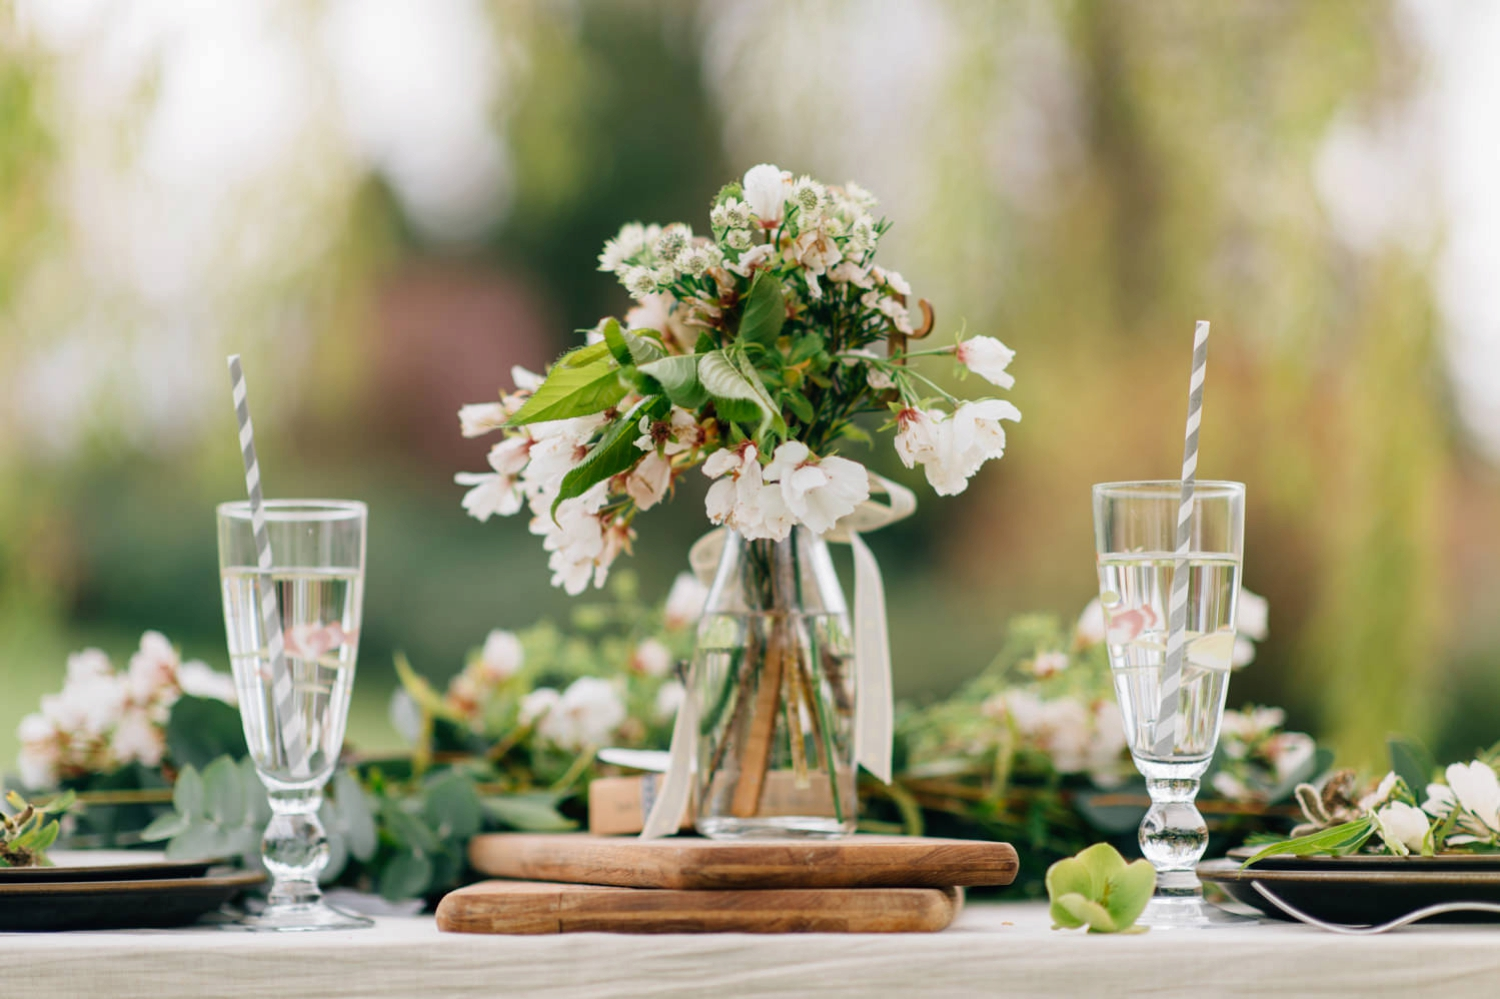 Table for Two Wedding Inspiration Northern Ireland 010.JPG